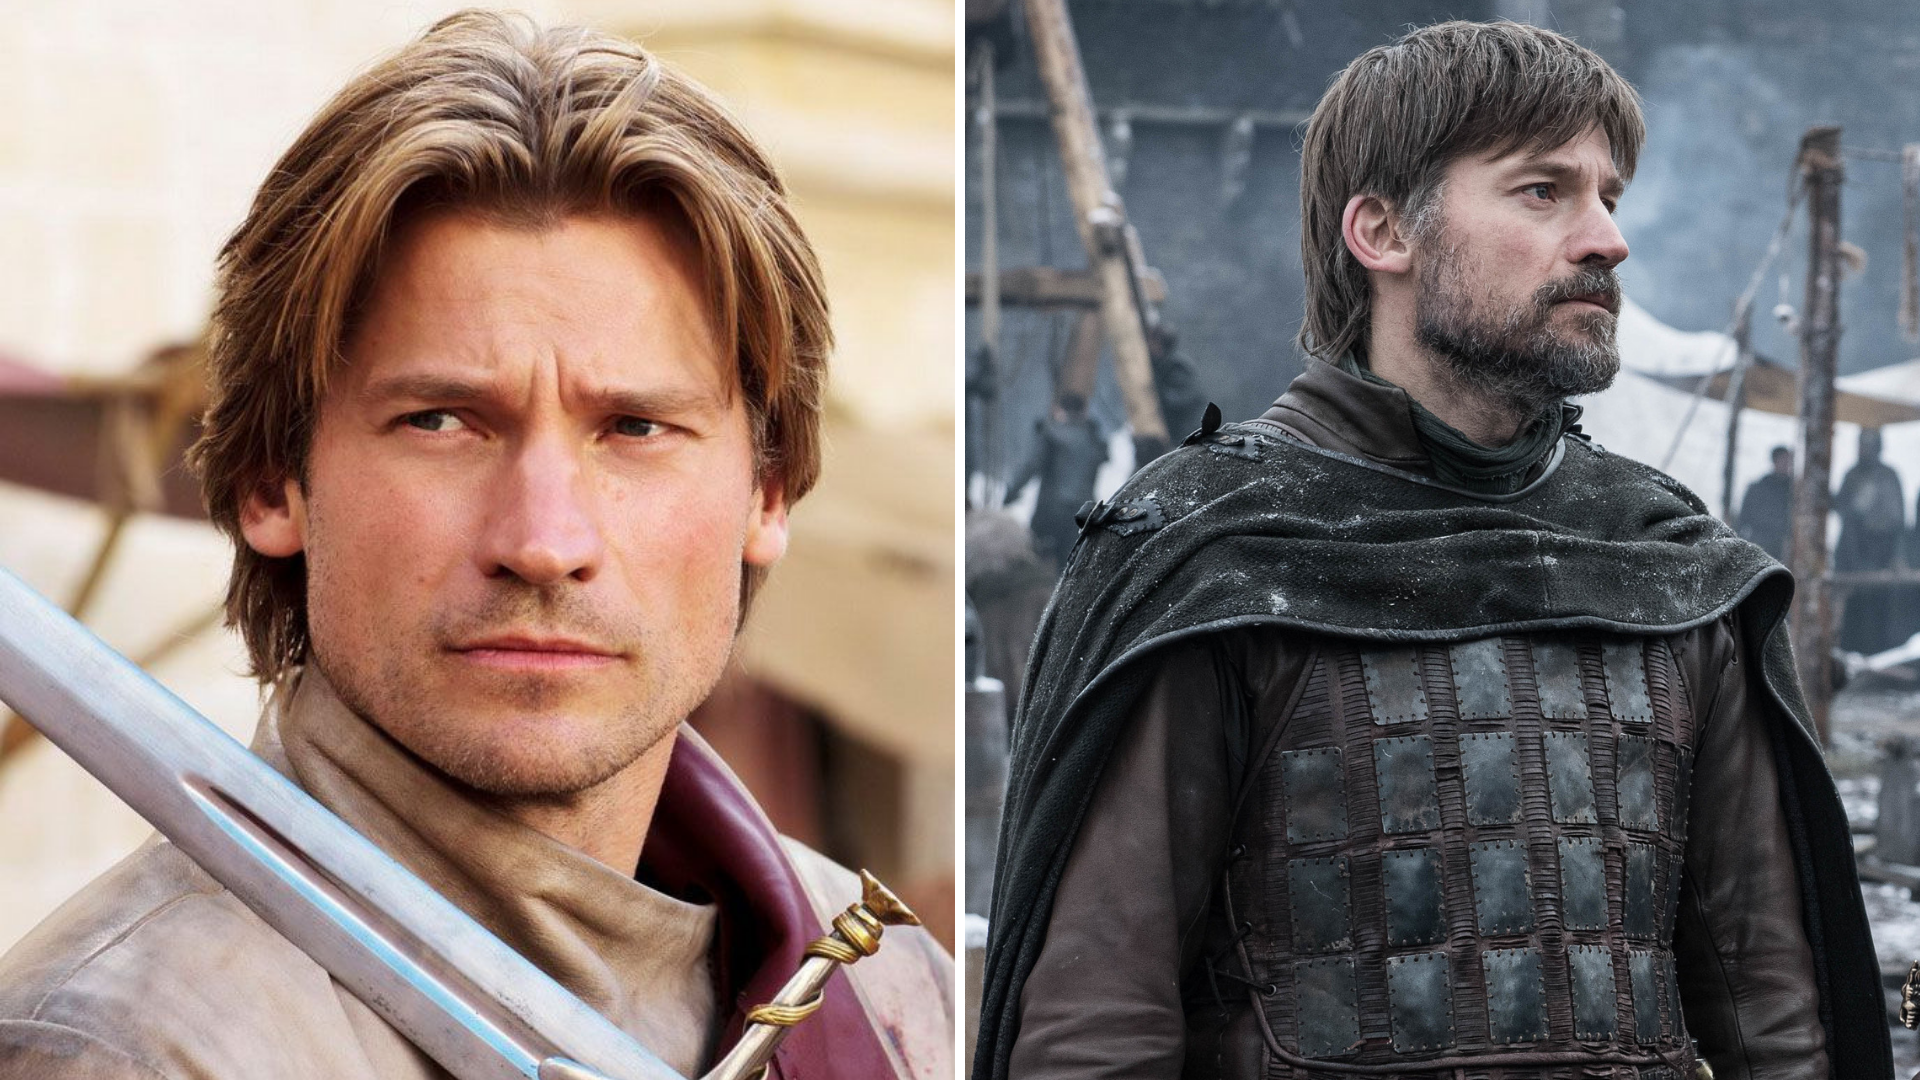 Game of Thrones - Jaime